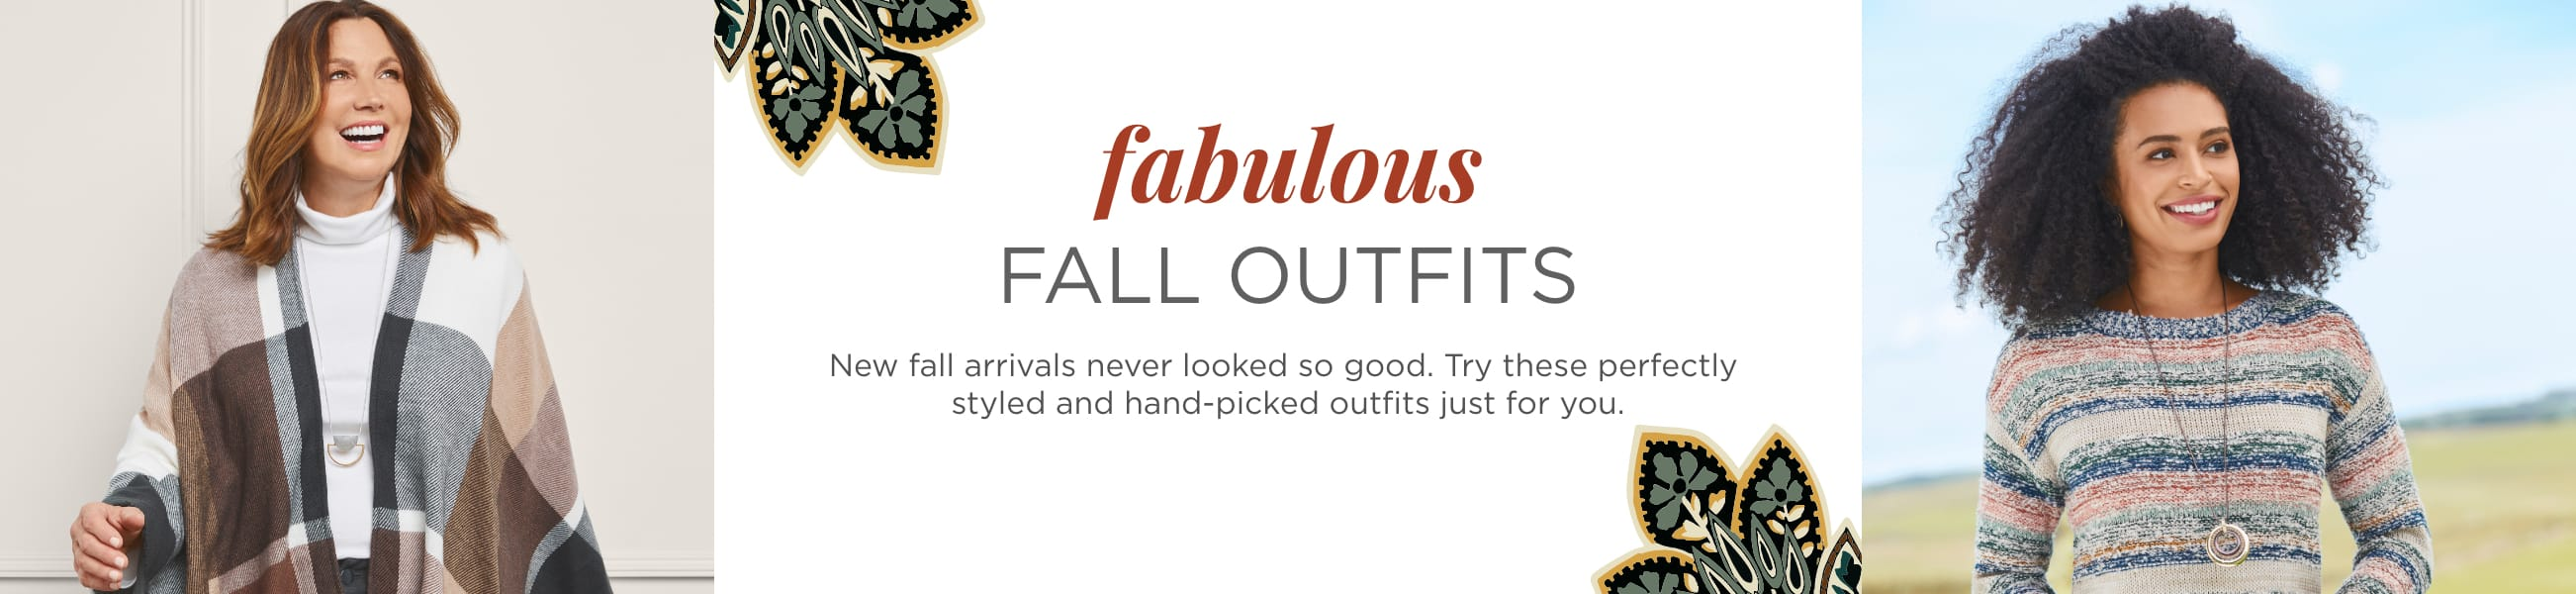 Fabulous Fall Outfits. New Fall arrivals never looked so good. Try these perfectly styled and hand-picked outfits just for you..